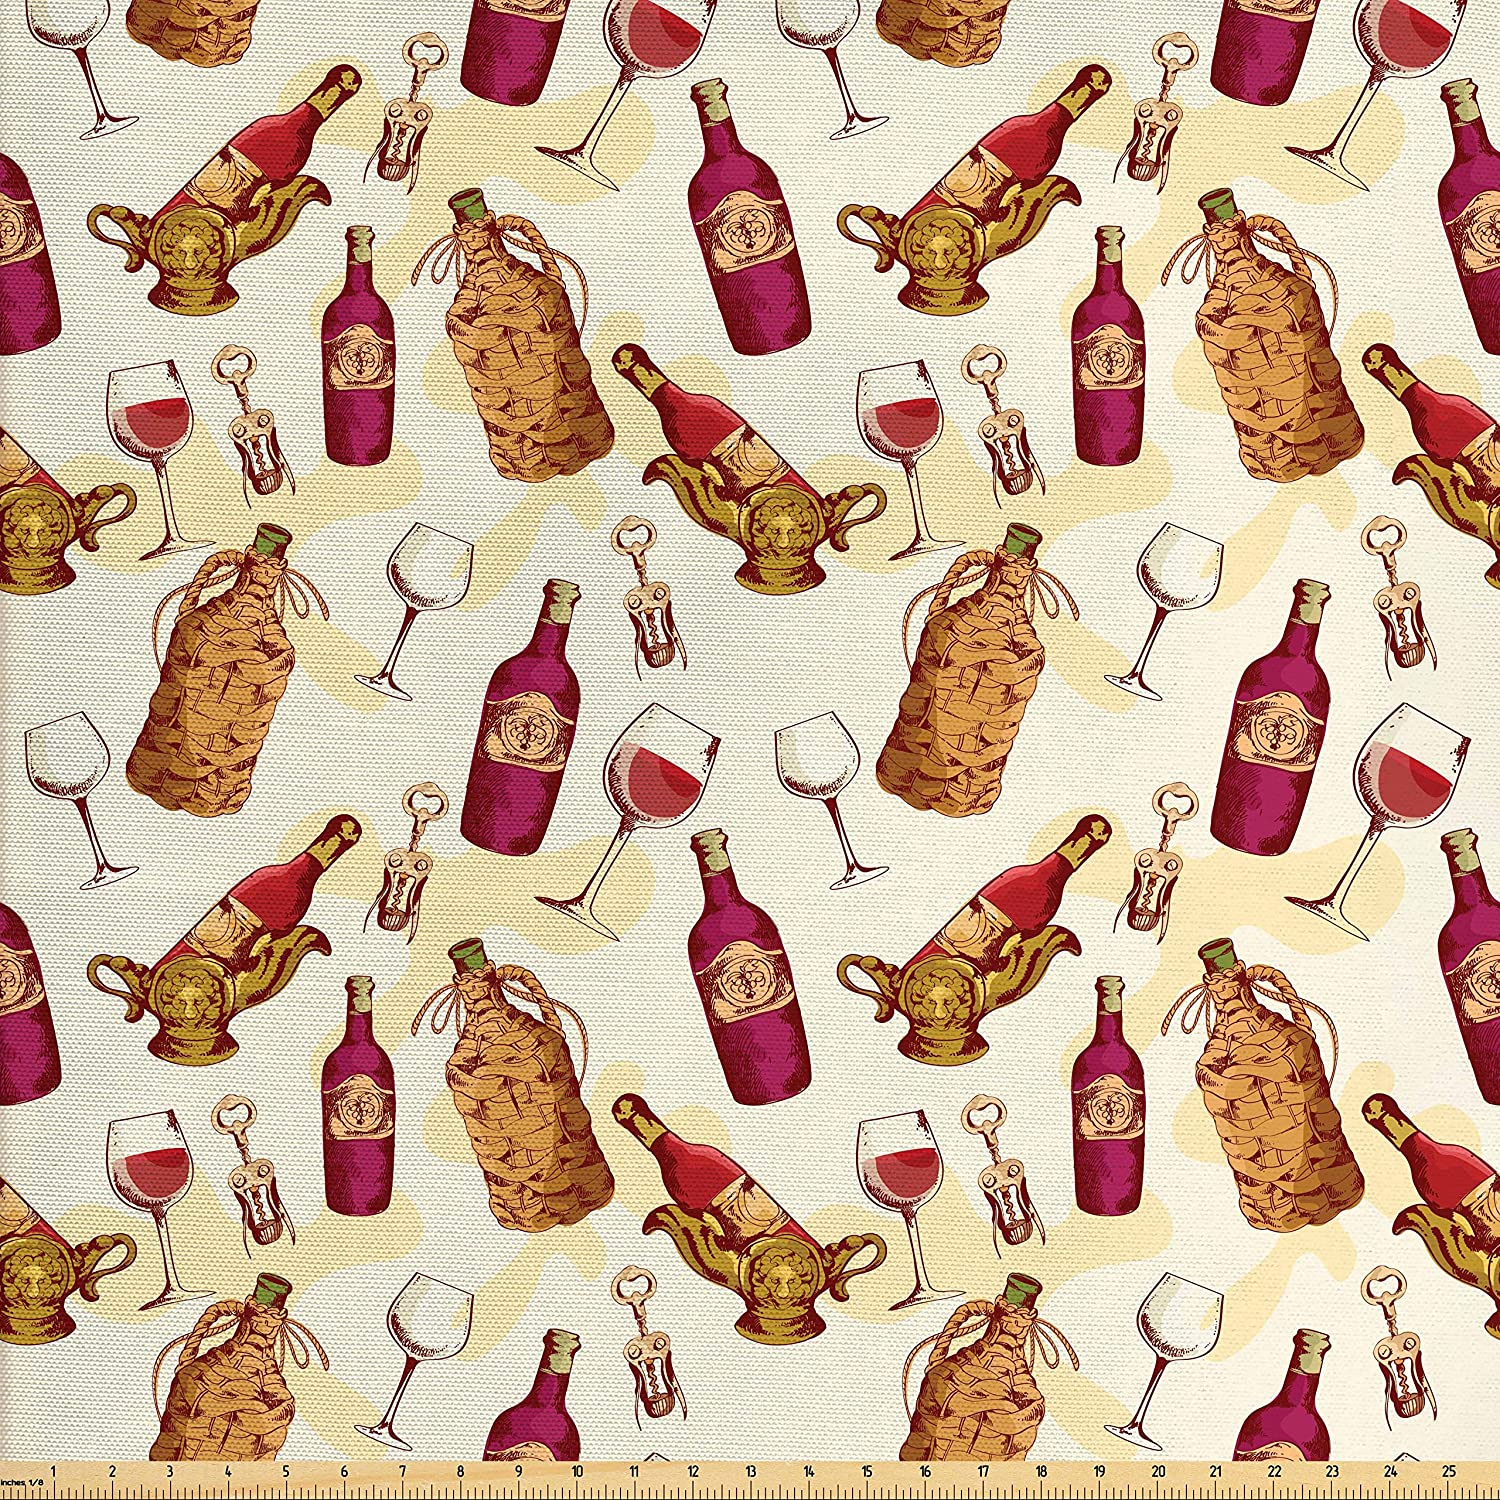 Ambesonne Winery Fabric by The Yard, Vintage Pattern with Glass Bottle Corkscrew Country Restaurant Table, Decorative Fabric for Upholstery and Home Accents, Fuchsia Ruby Pale Brown